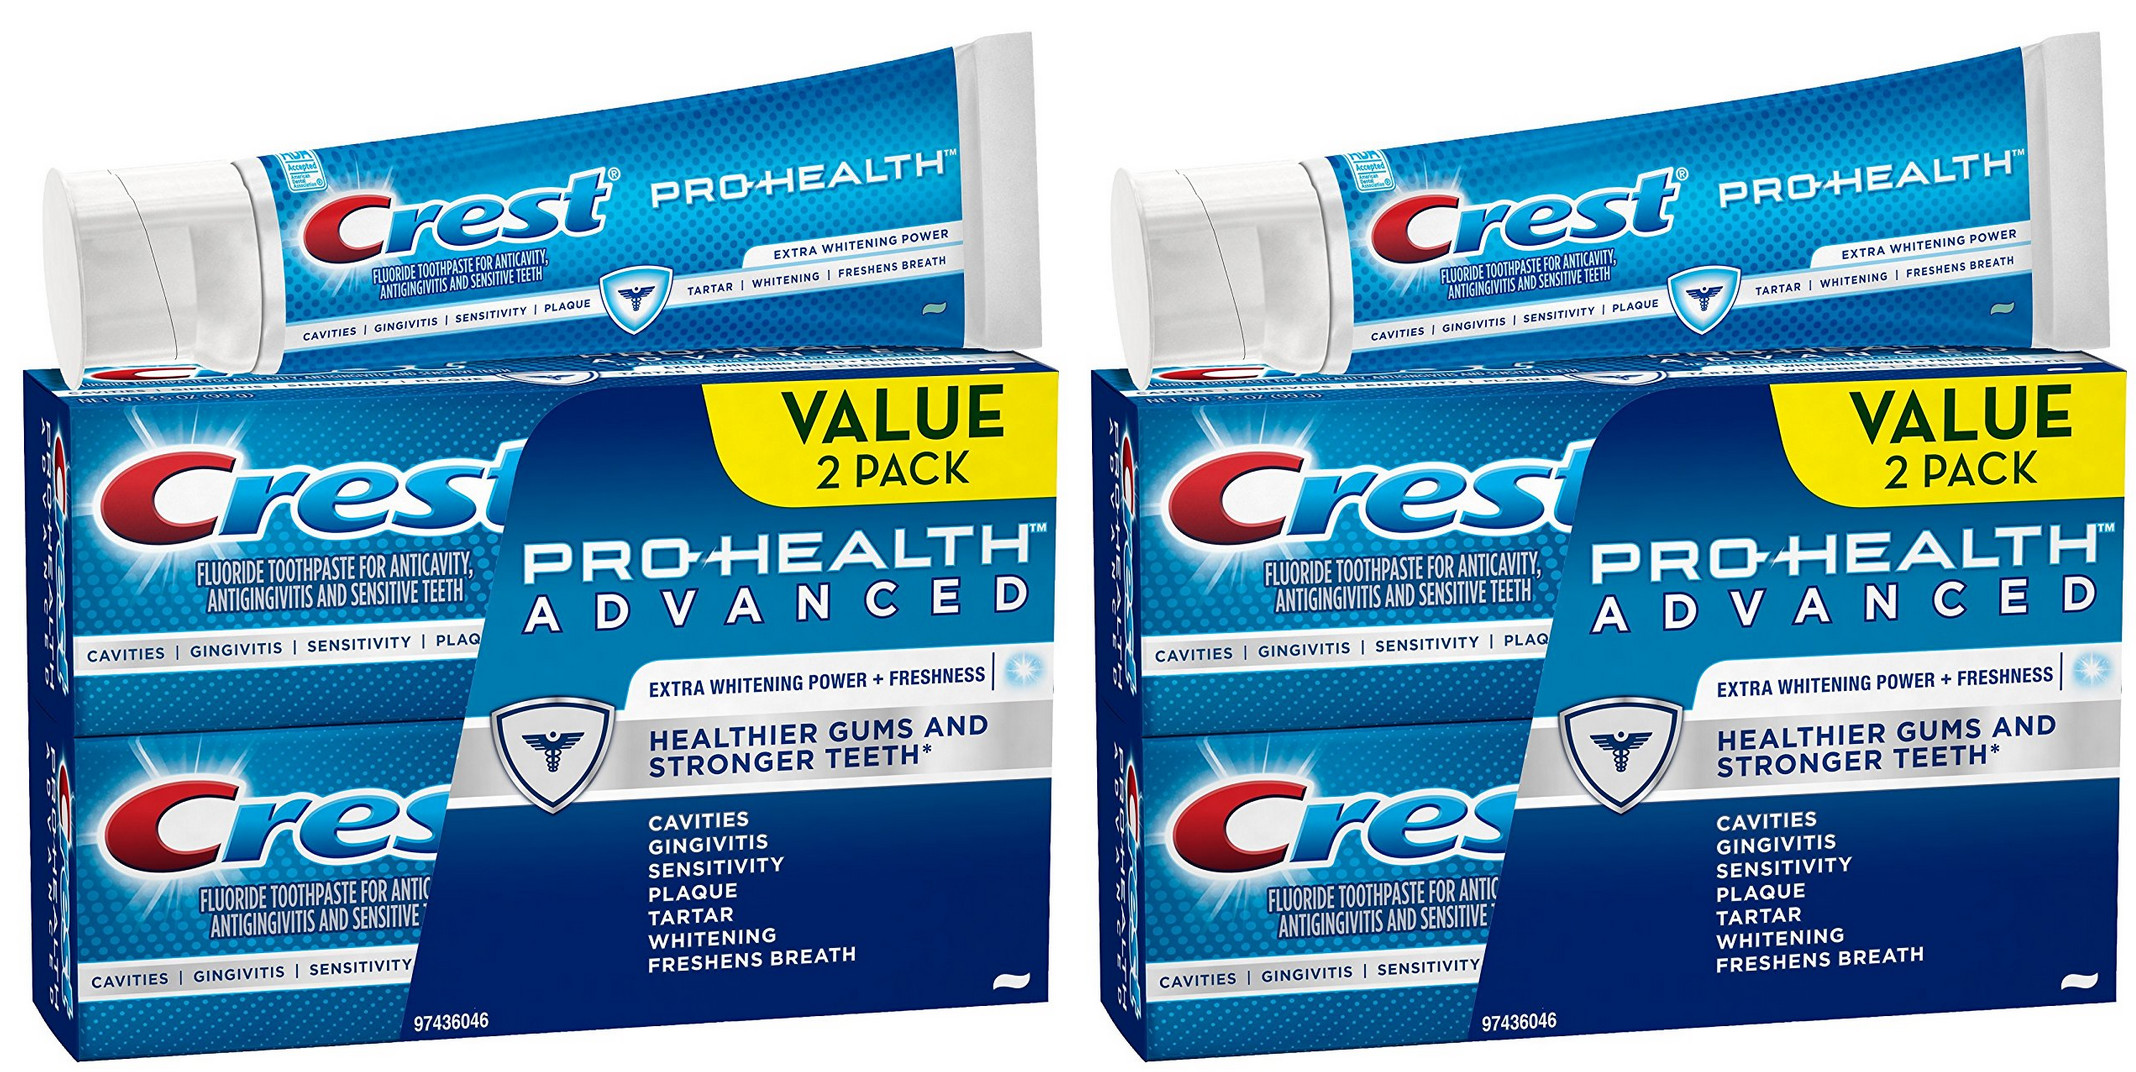 picture regarding Monistat Printable Coupons titled CVS Discounts 7/16 - 7/22 - Hip2Help save